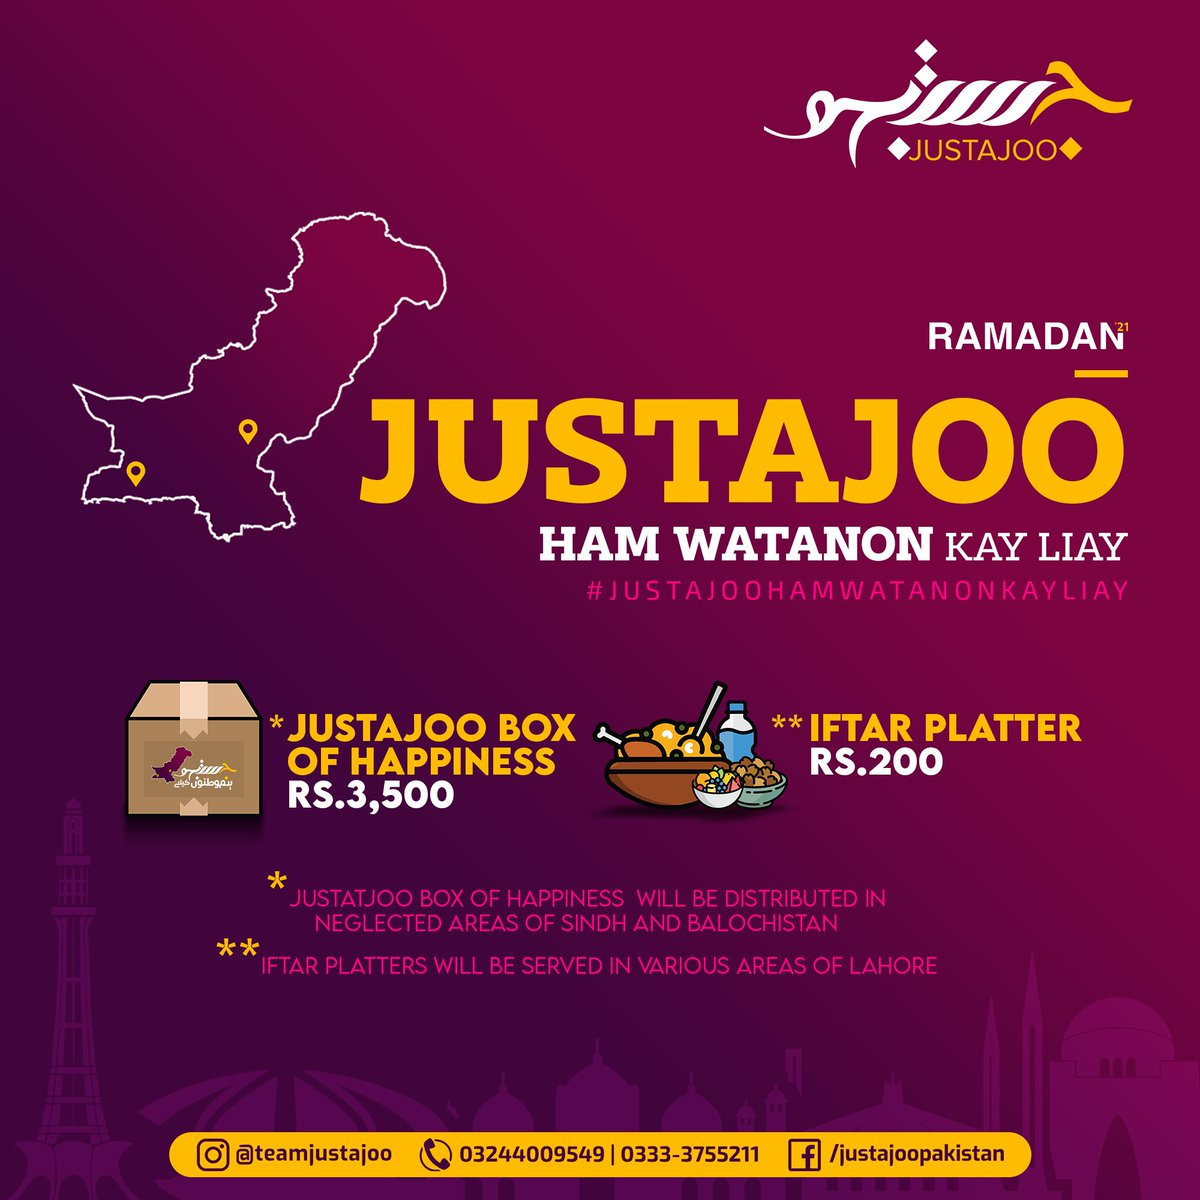 Ramadan'21 campaign is live! #JustajooHamWatanonKayLiay  With support of Pak Army, we'll send our love to Sindh & Balochistan in Ramadan Justajoo will also distribute Iftar Platters to deserving people in Lahore.  For donations, Whatsapp: 03333755211, 03228448332, 03244009549 https://t.co/lJMSTlfI9N